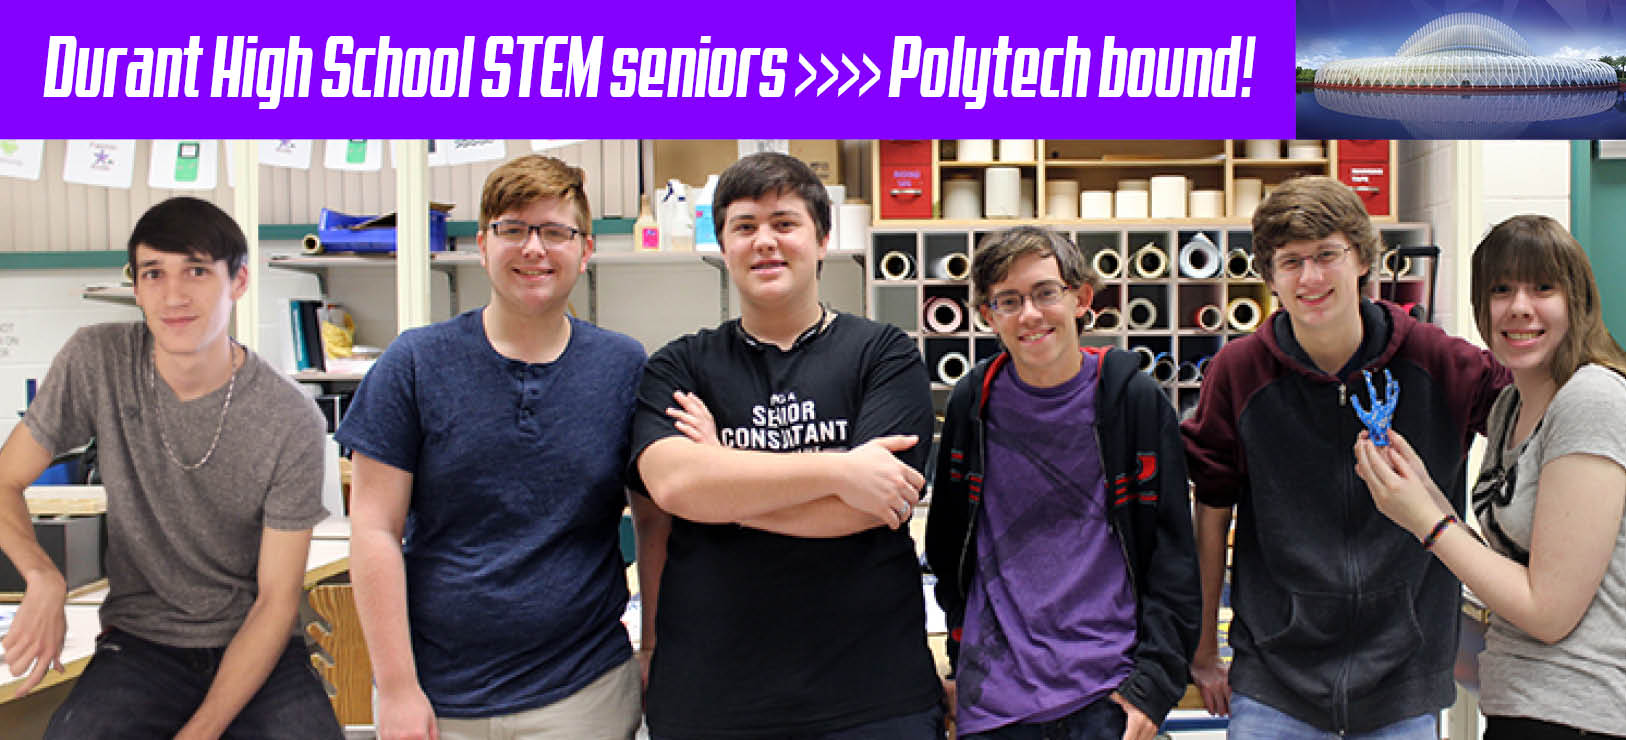 Image for Durant STEM students bound for Florida Polytechnic University